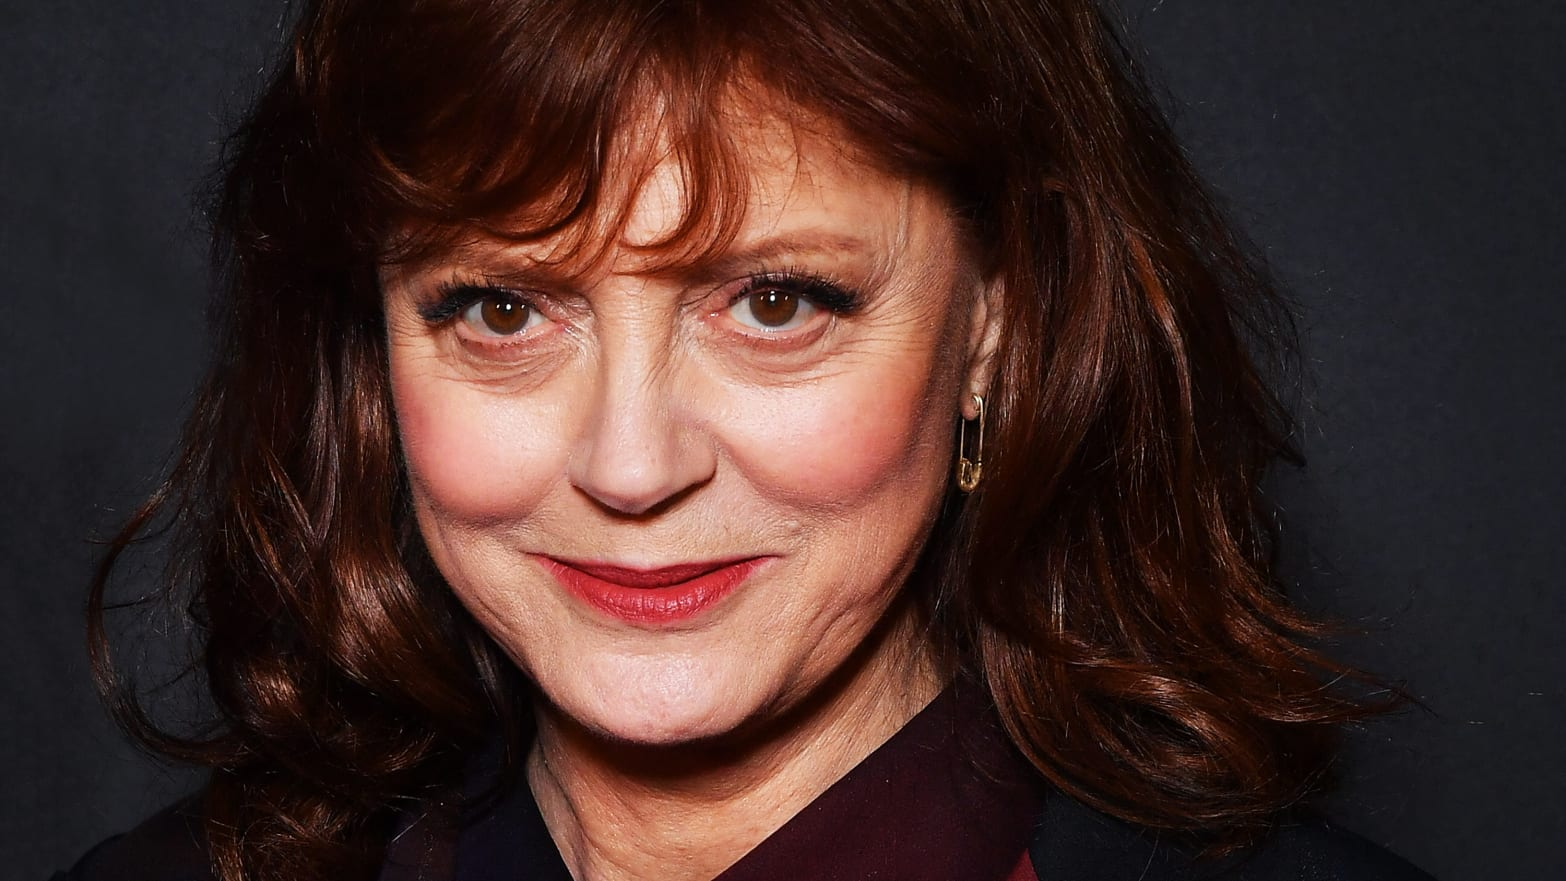 Democrats Are Feuding About Susan Sarandon Because 2016 Won't Die